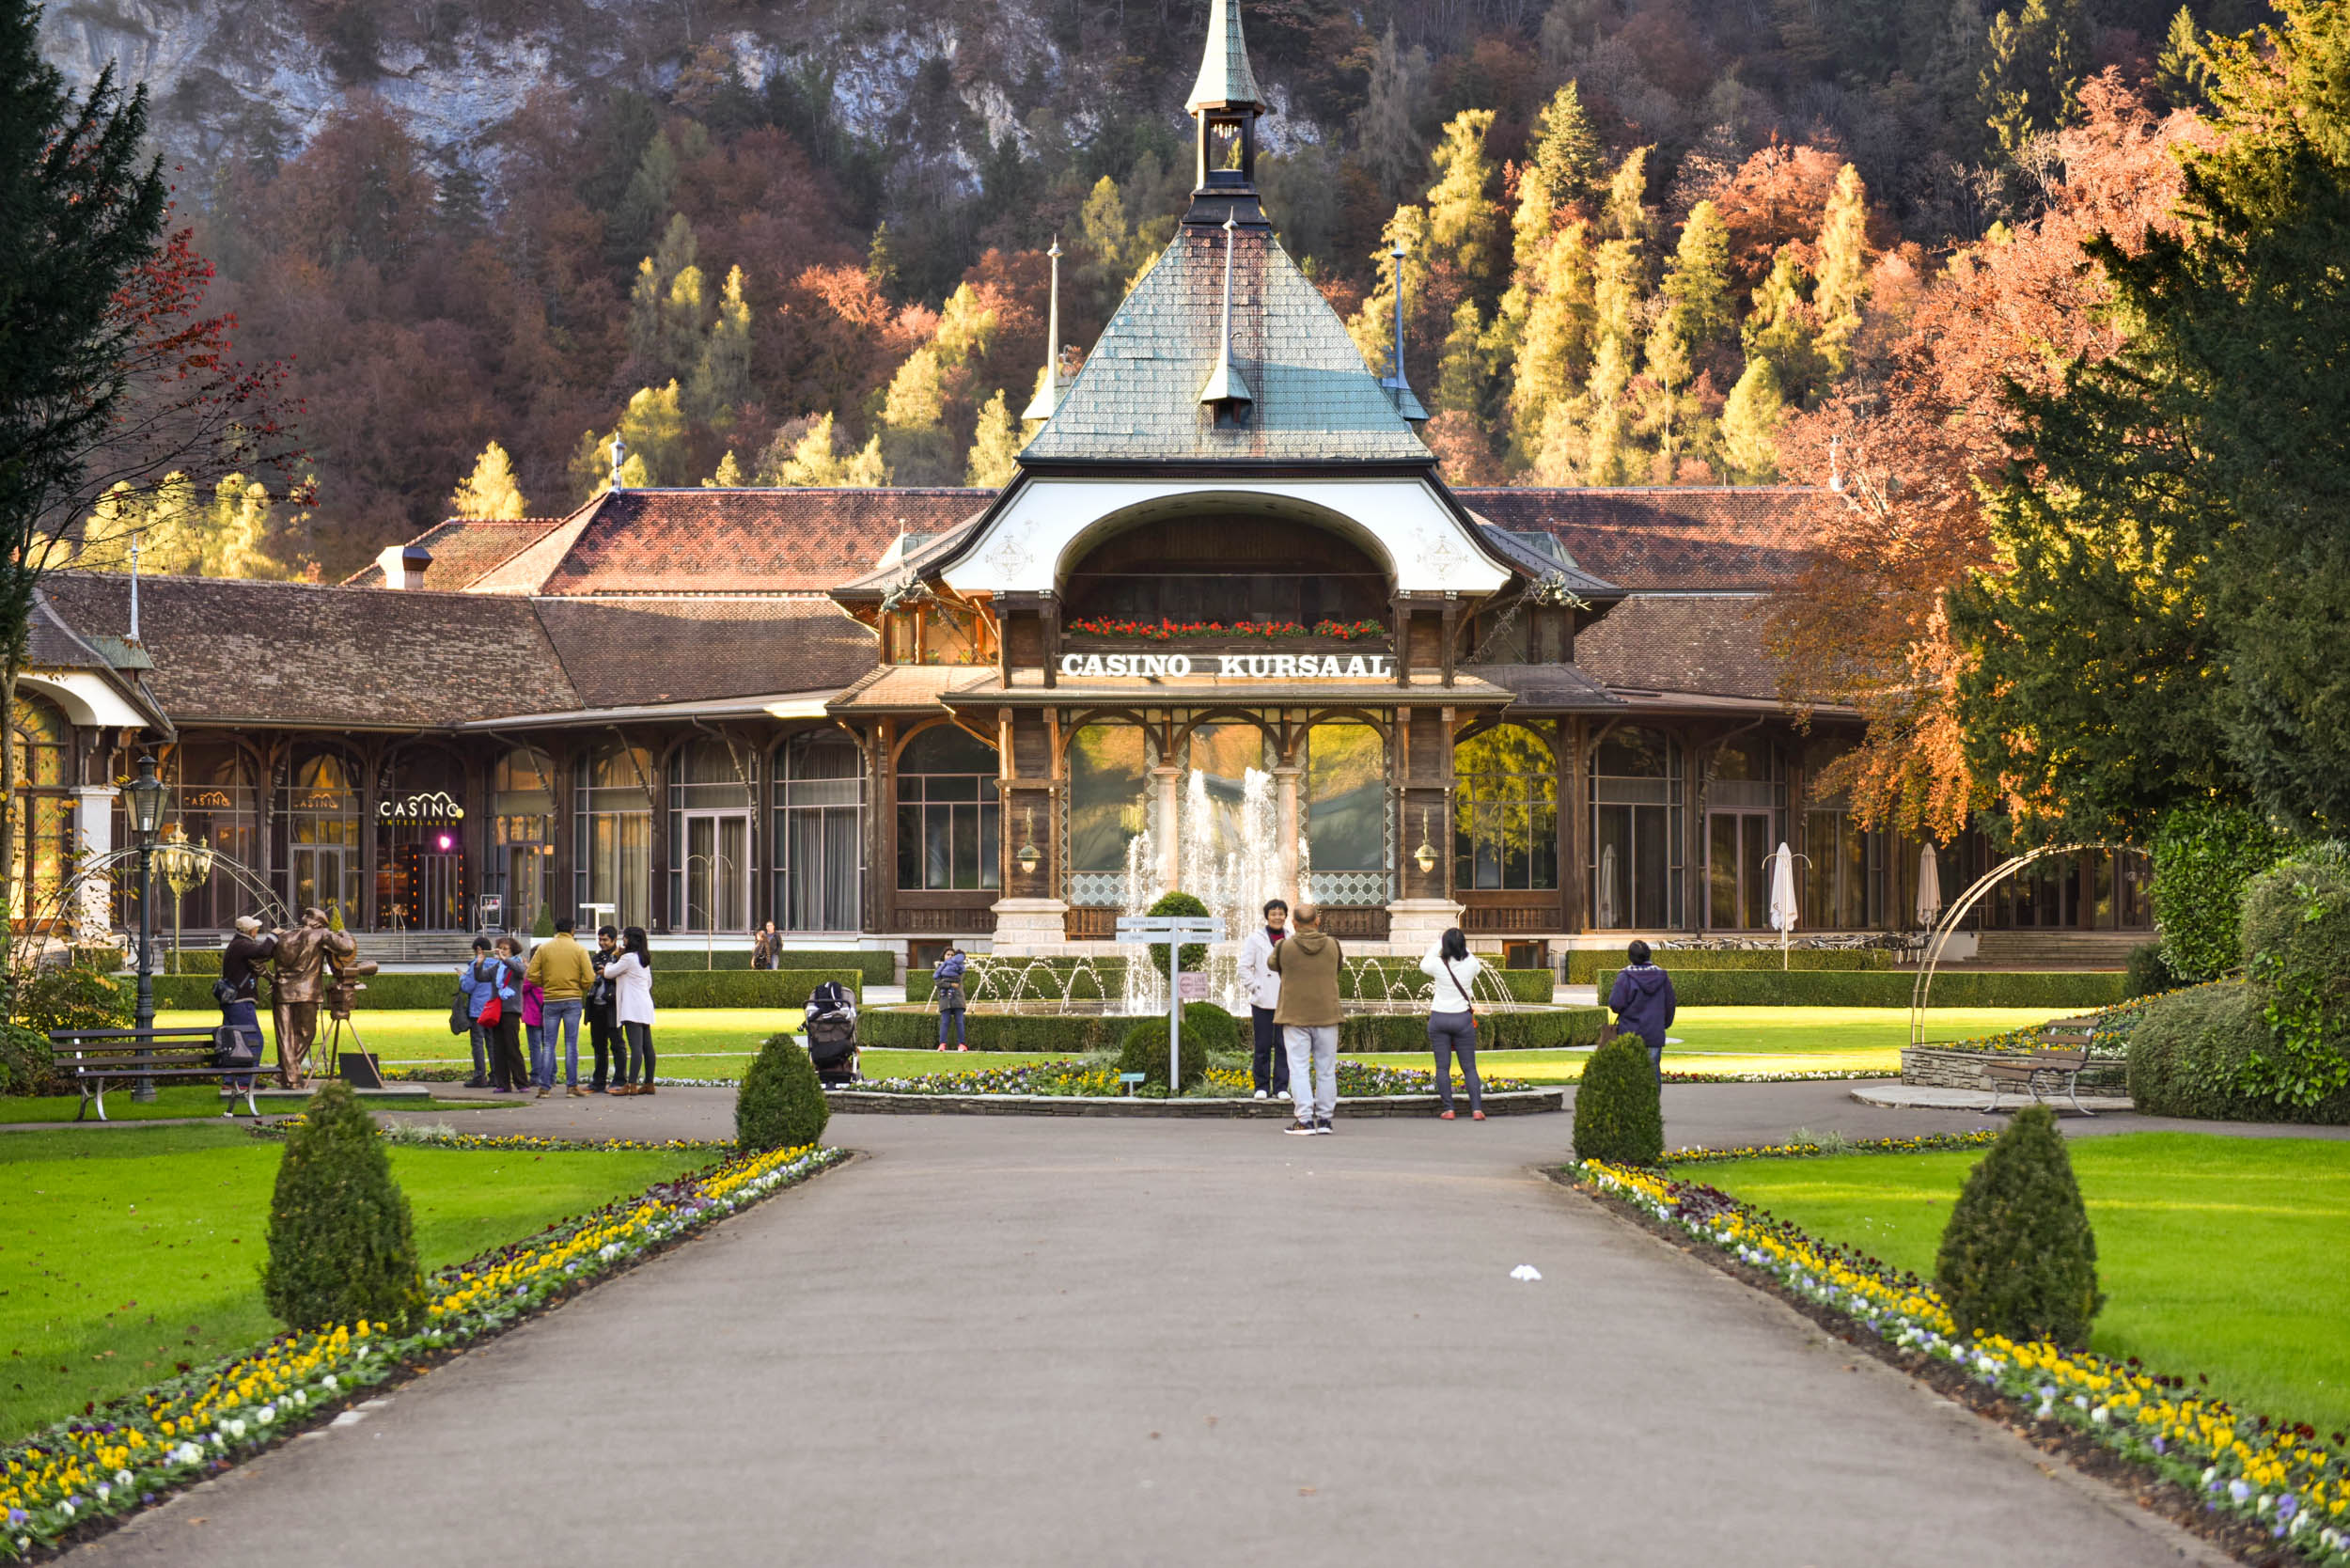 interlaken_3-min.jpg